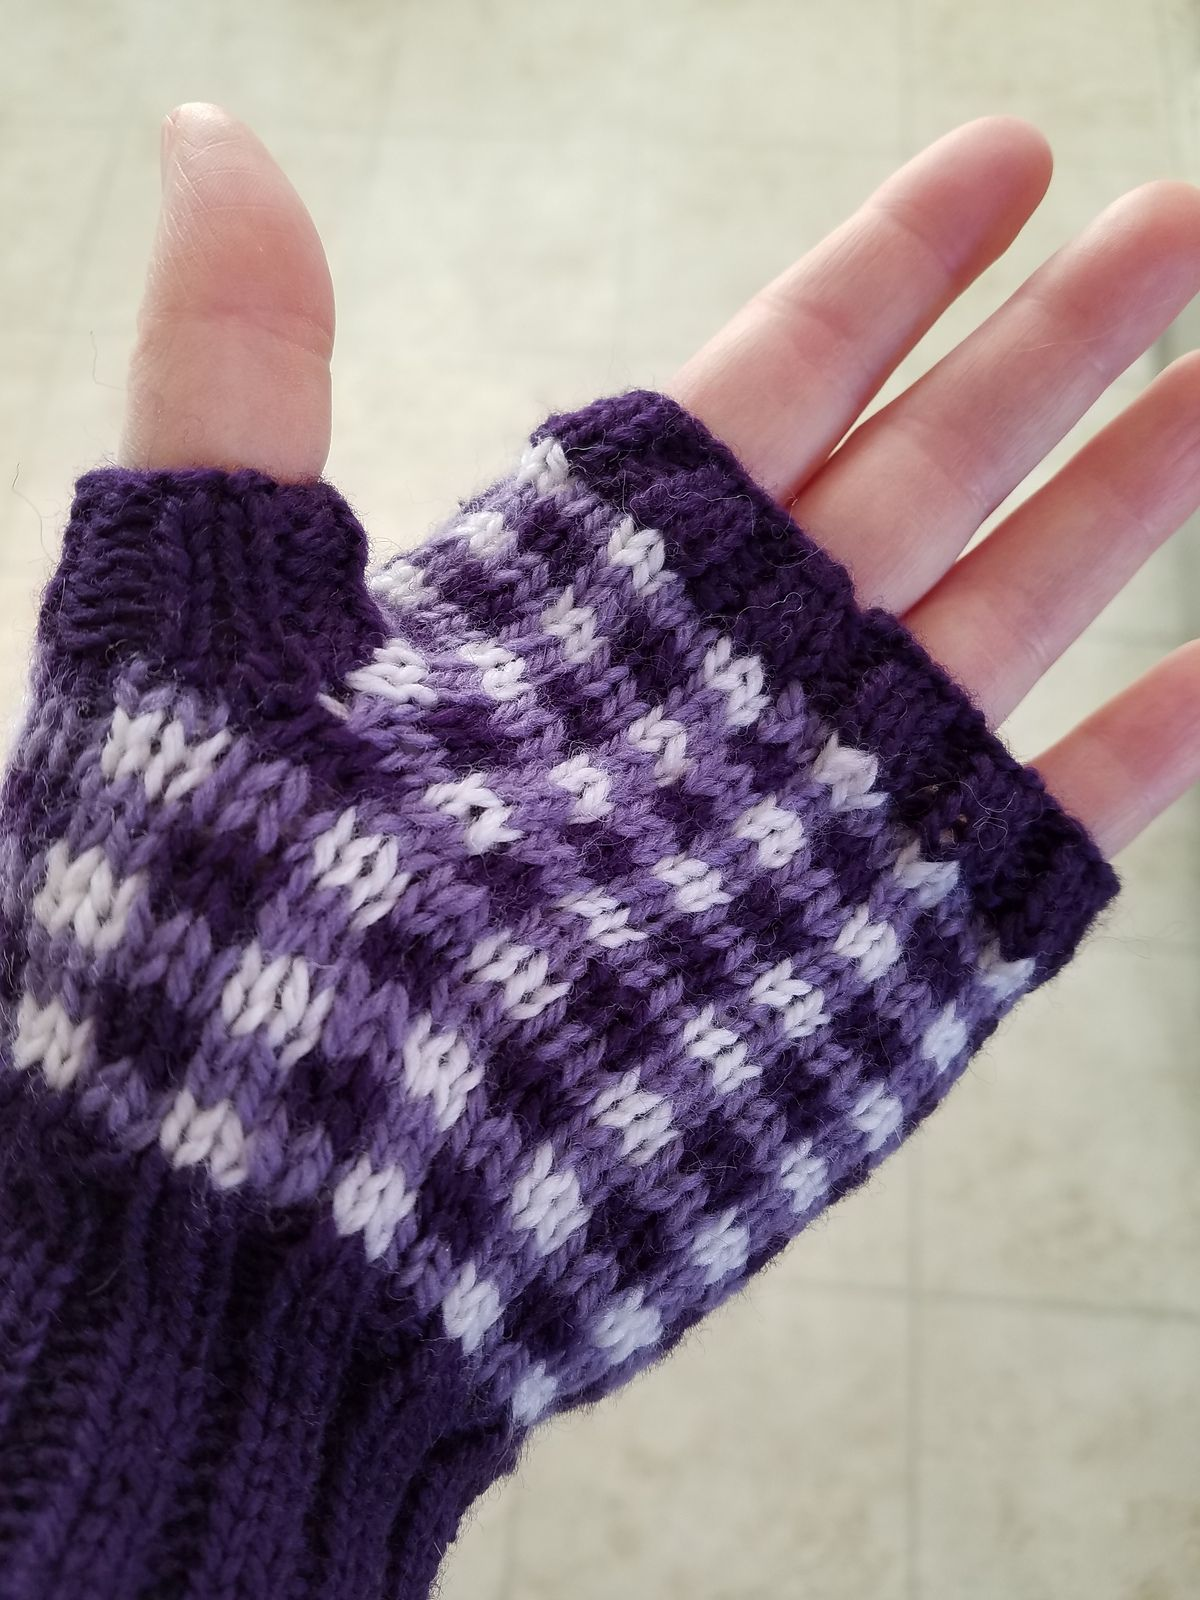 Free Knitting Pattern for Gingham Fingerless Mitts - Mitts knit in a ...